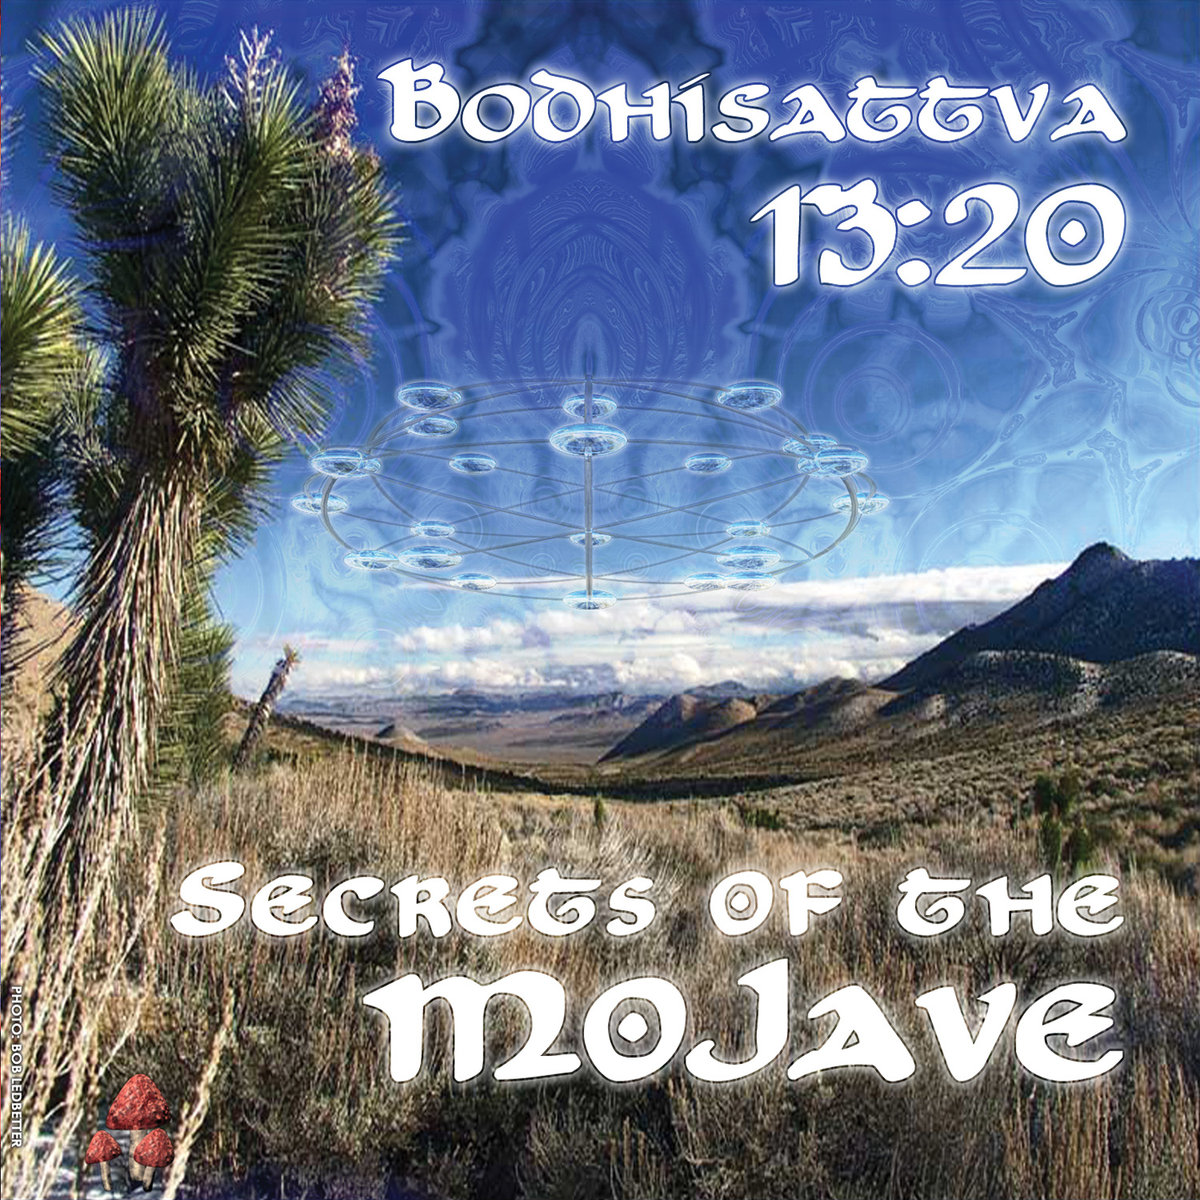 Bodhisattva 13:20 - Calculation Malfunction @ 'Secrets of the Mojave' album (electronic, goa)